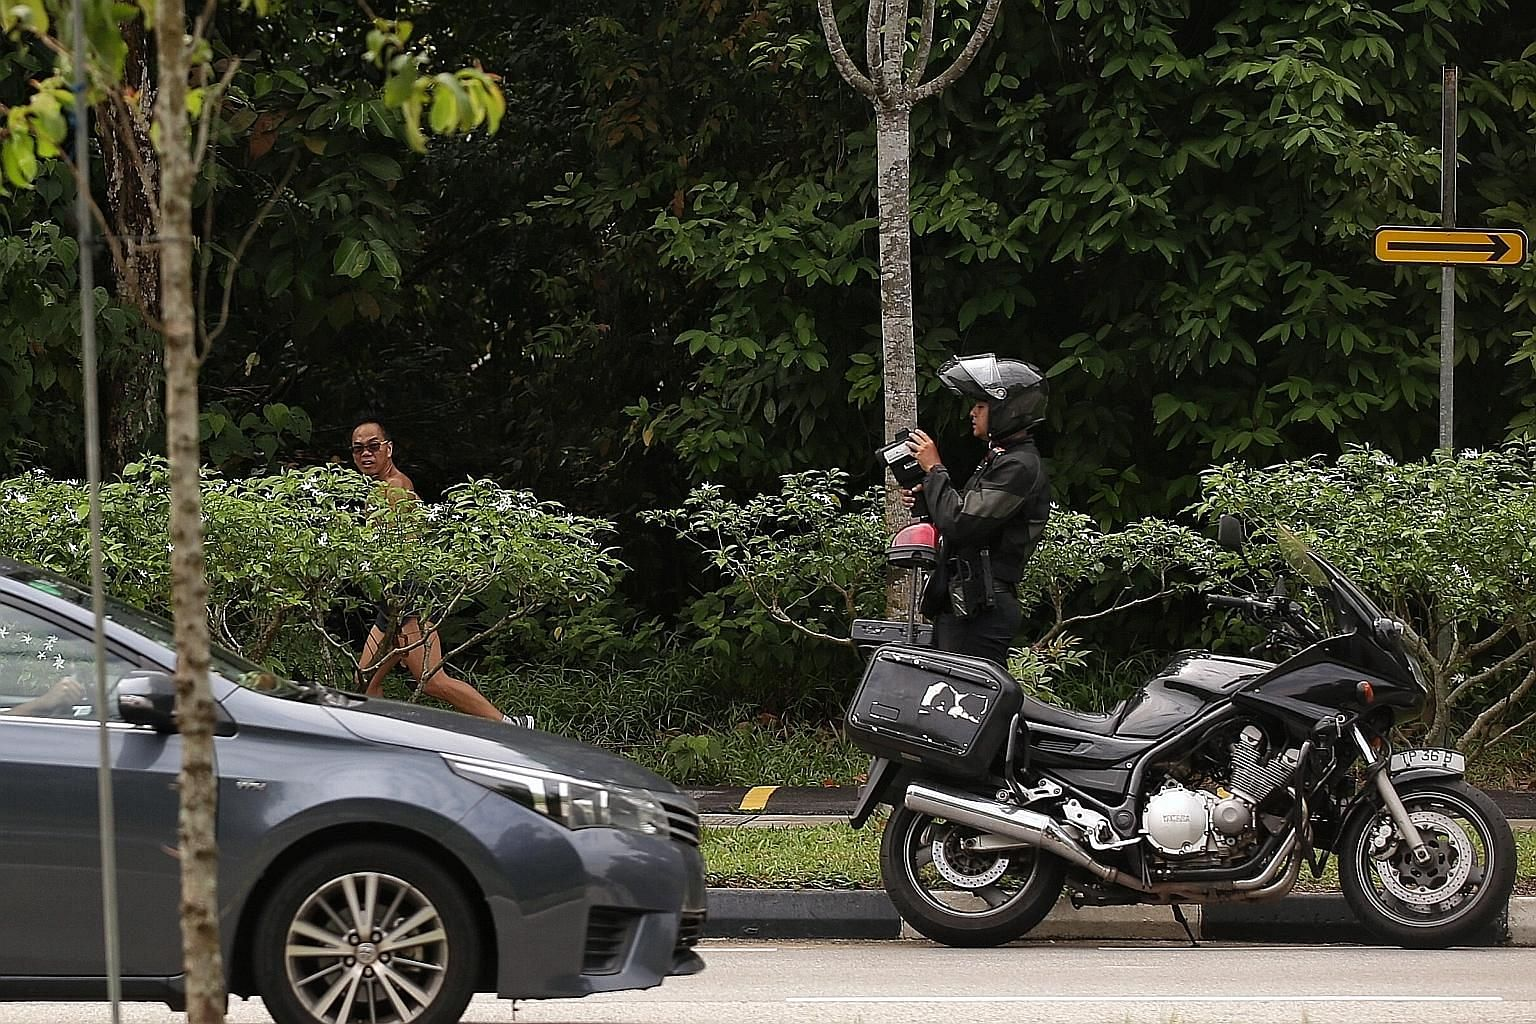 A Traffic Police officer monitoring traffic speed in Mandai Road during an enforcement operation yesterday.